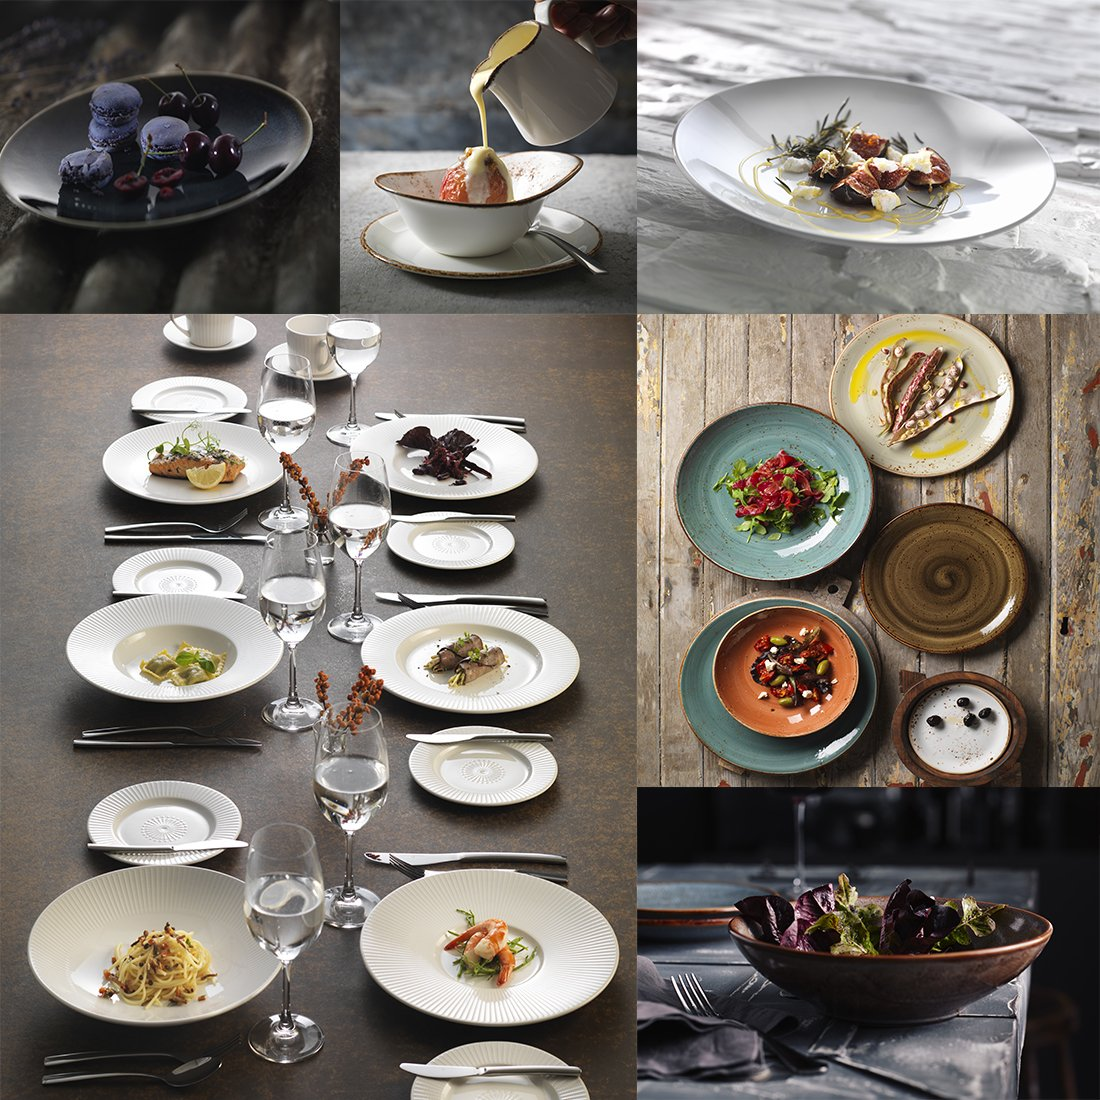 Our investment in technology and #innovation guarantees a #quality product - #steelite #tableware  https://www. steelite.com/tableware.html  &nbsp;  <br>http://pic.twitter.com/d2QiOGS2u3